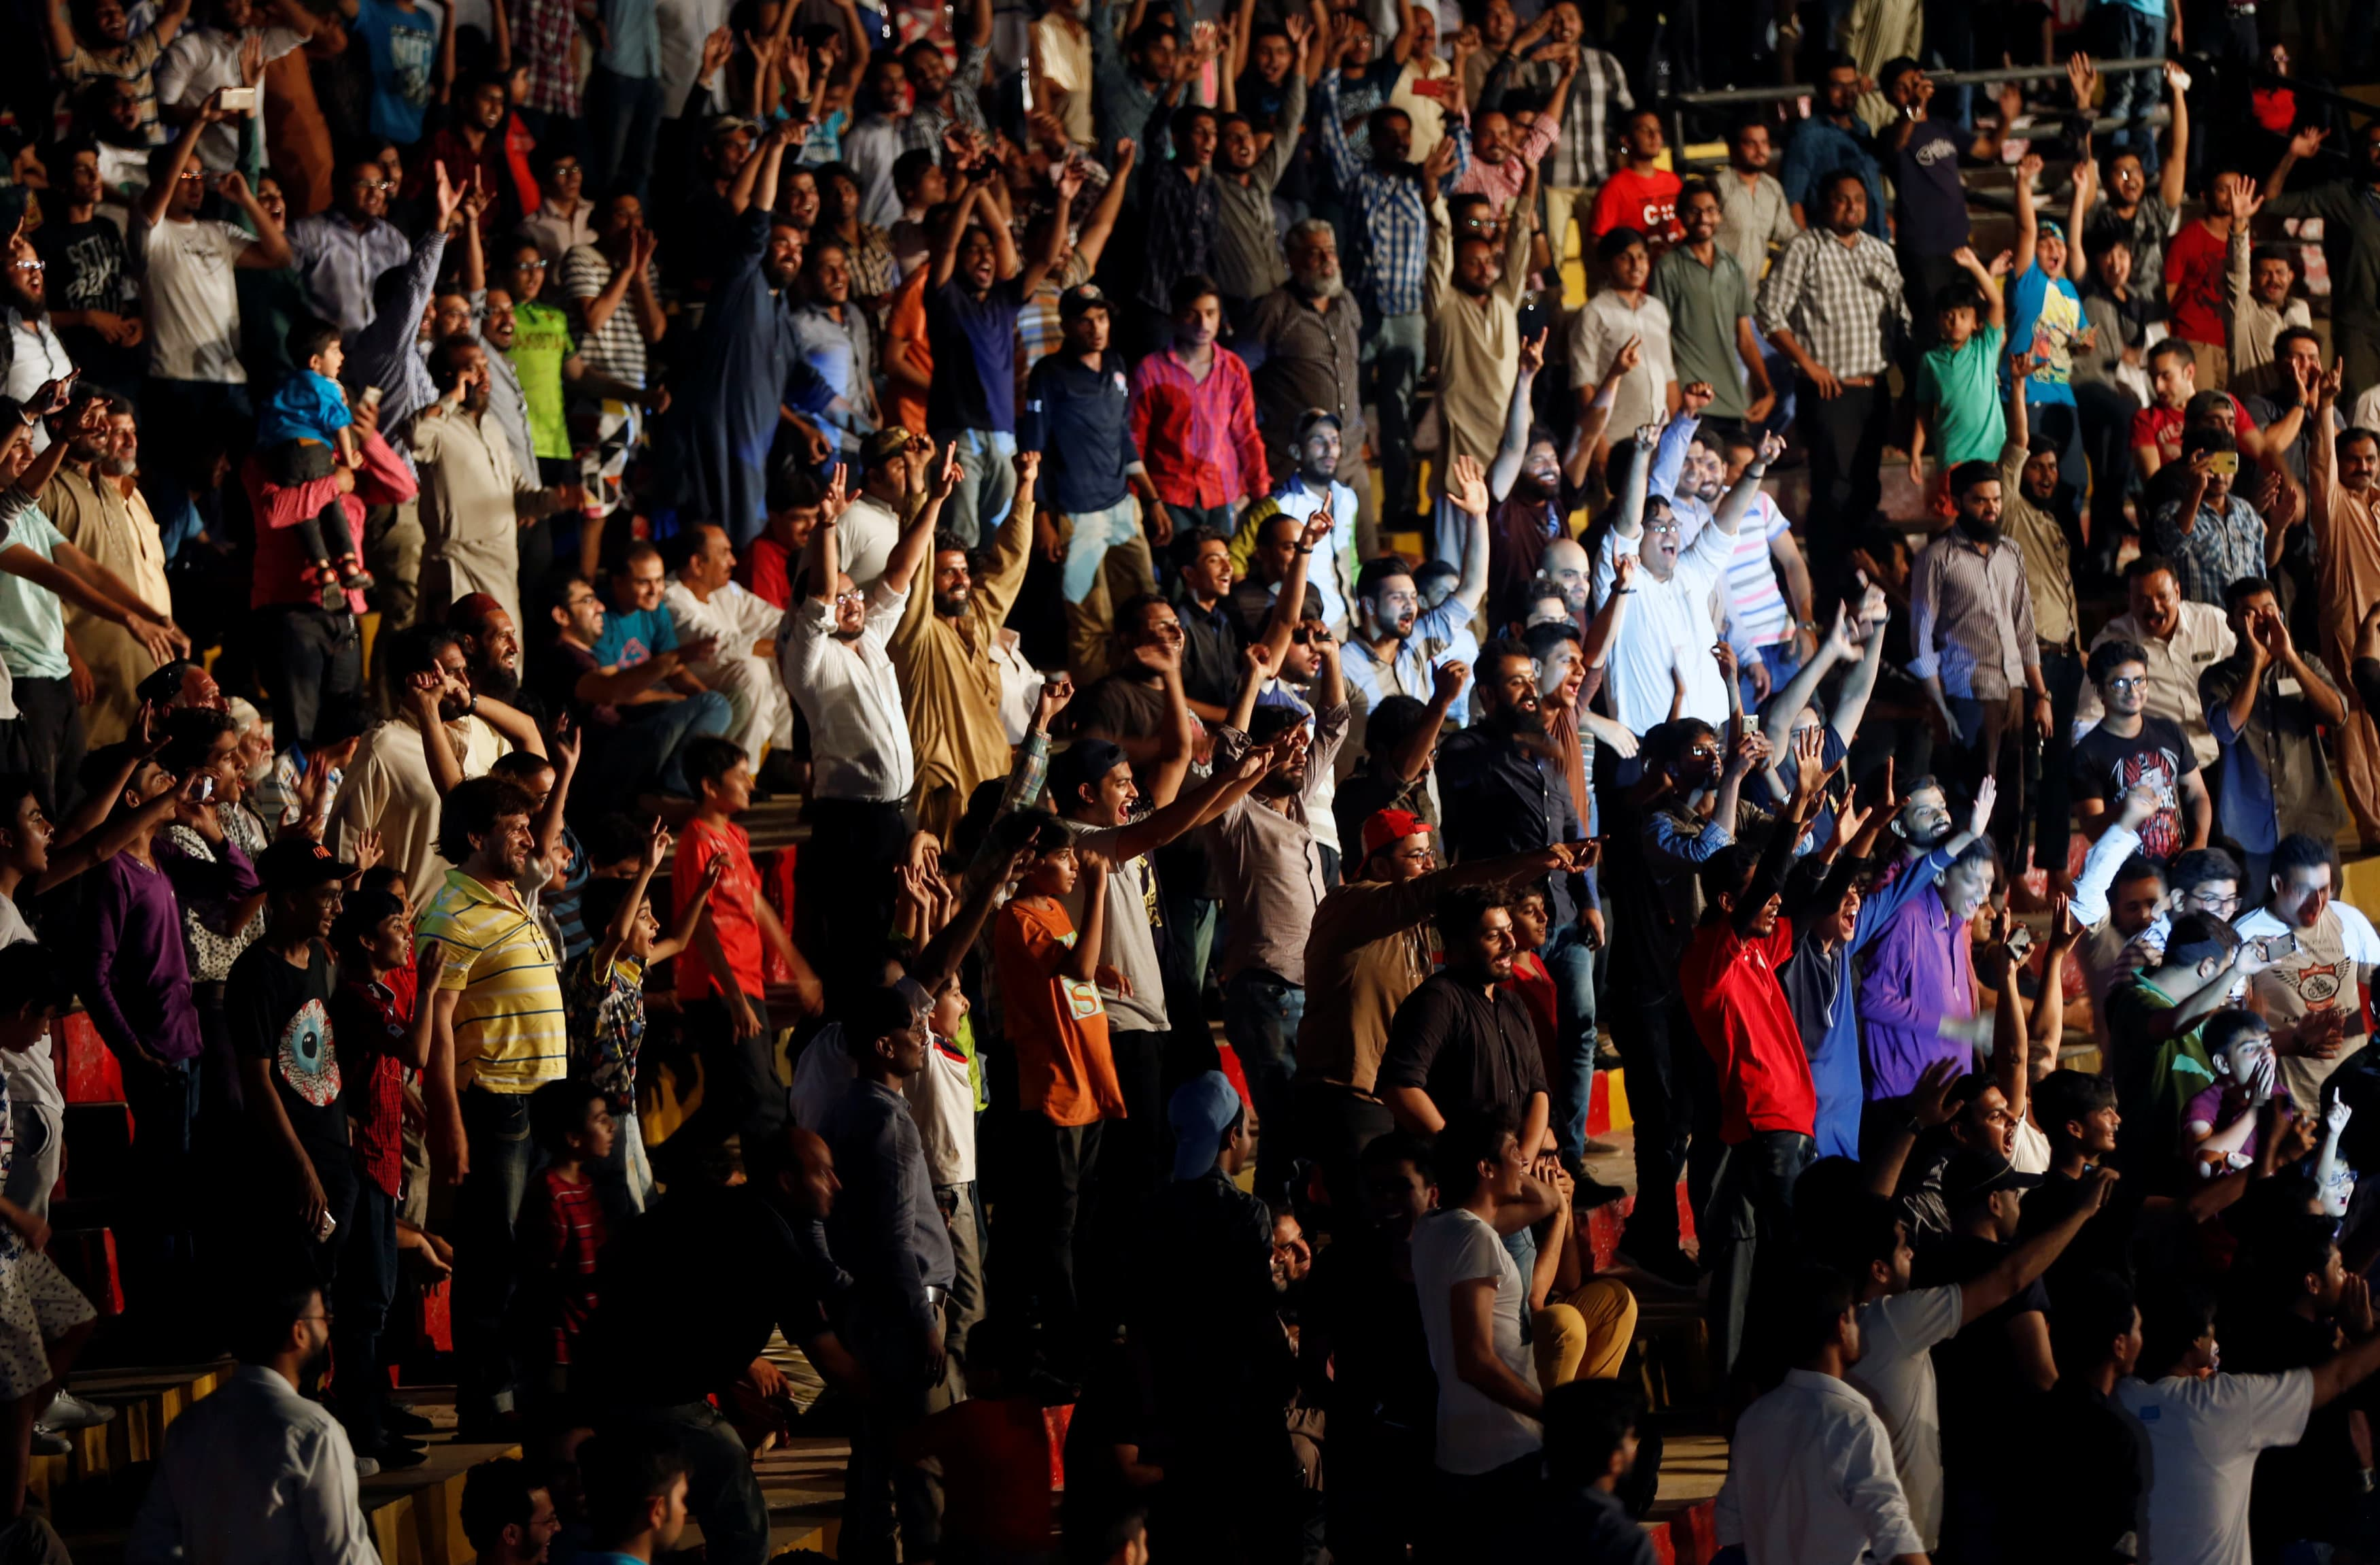 Pakistani wrestling fans react as they watch a fight during the show in Karachi.